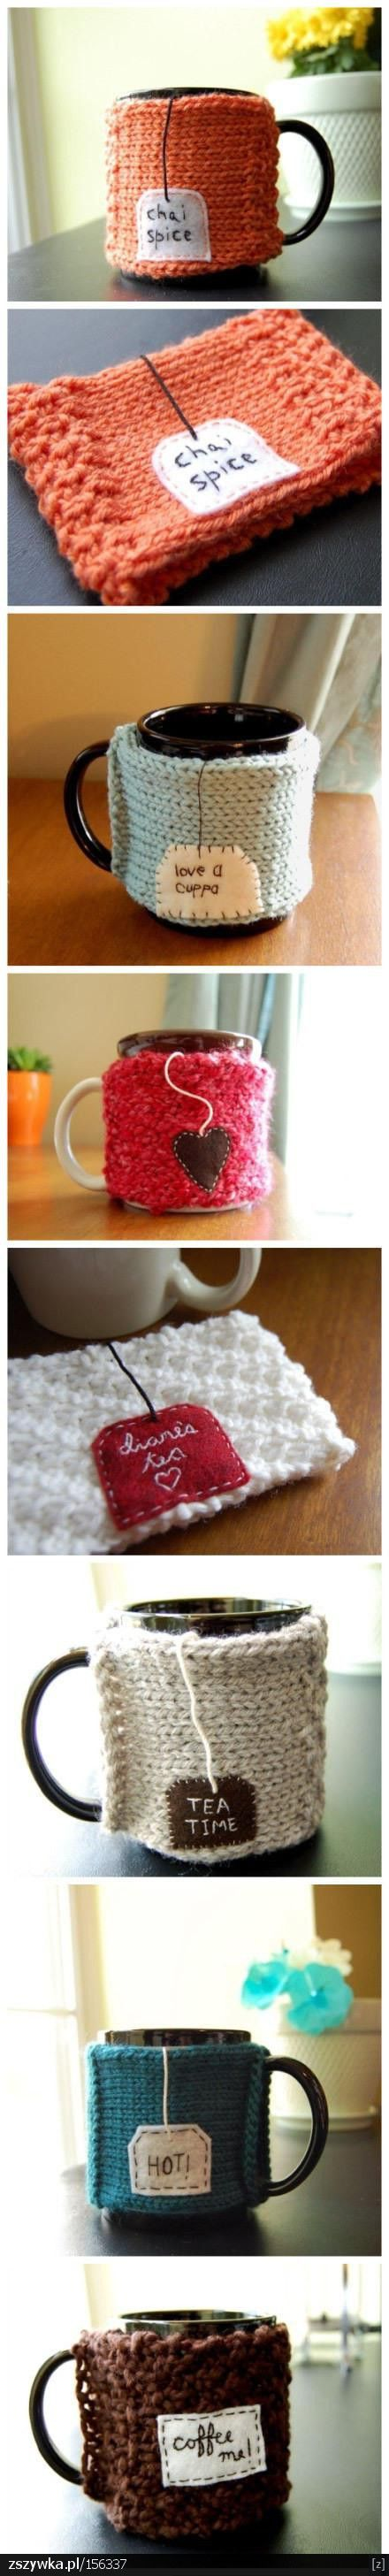 very cute mug warmers!